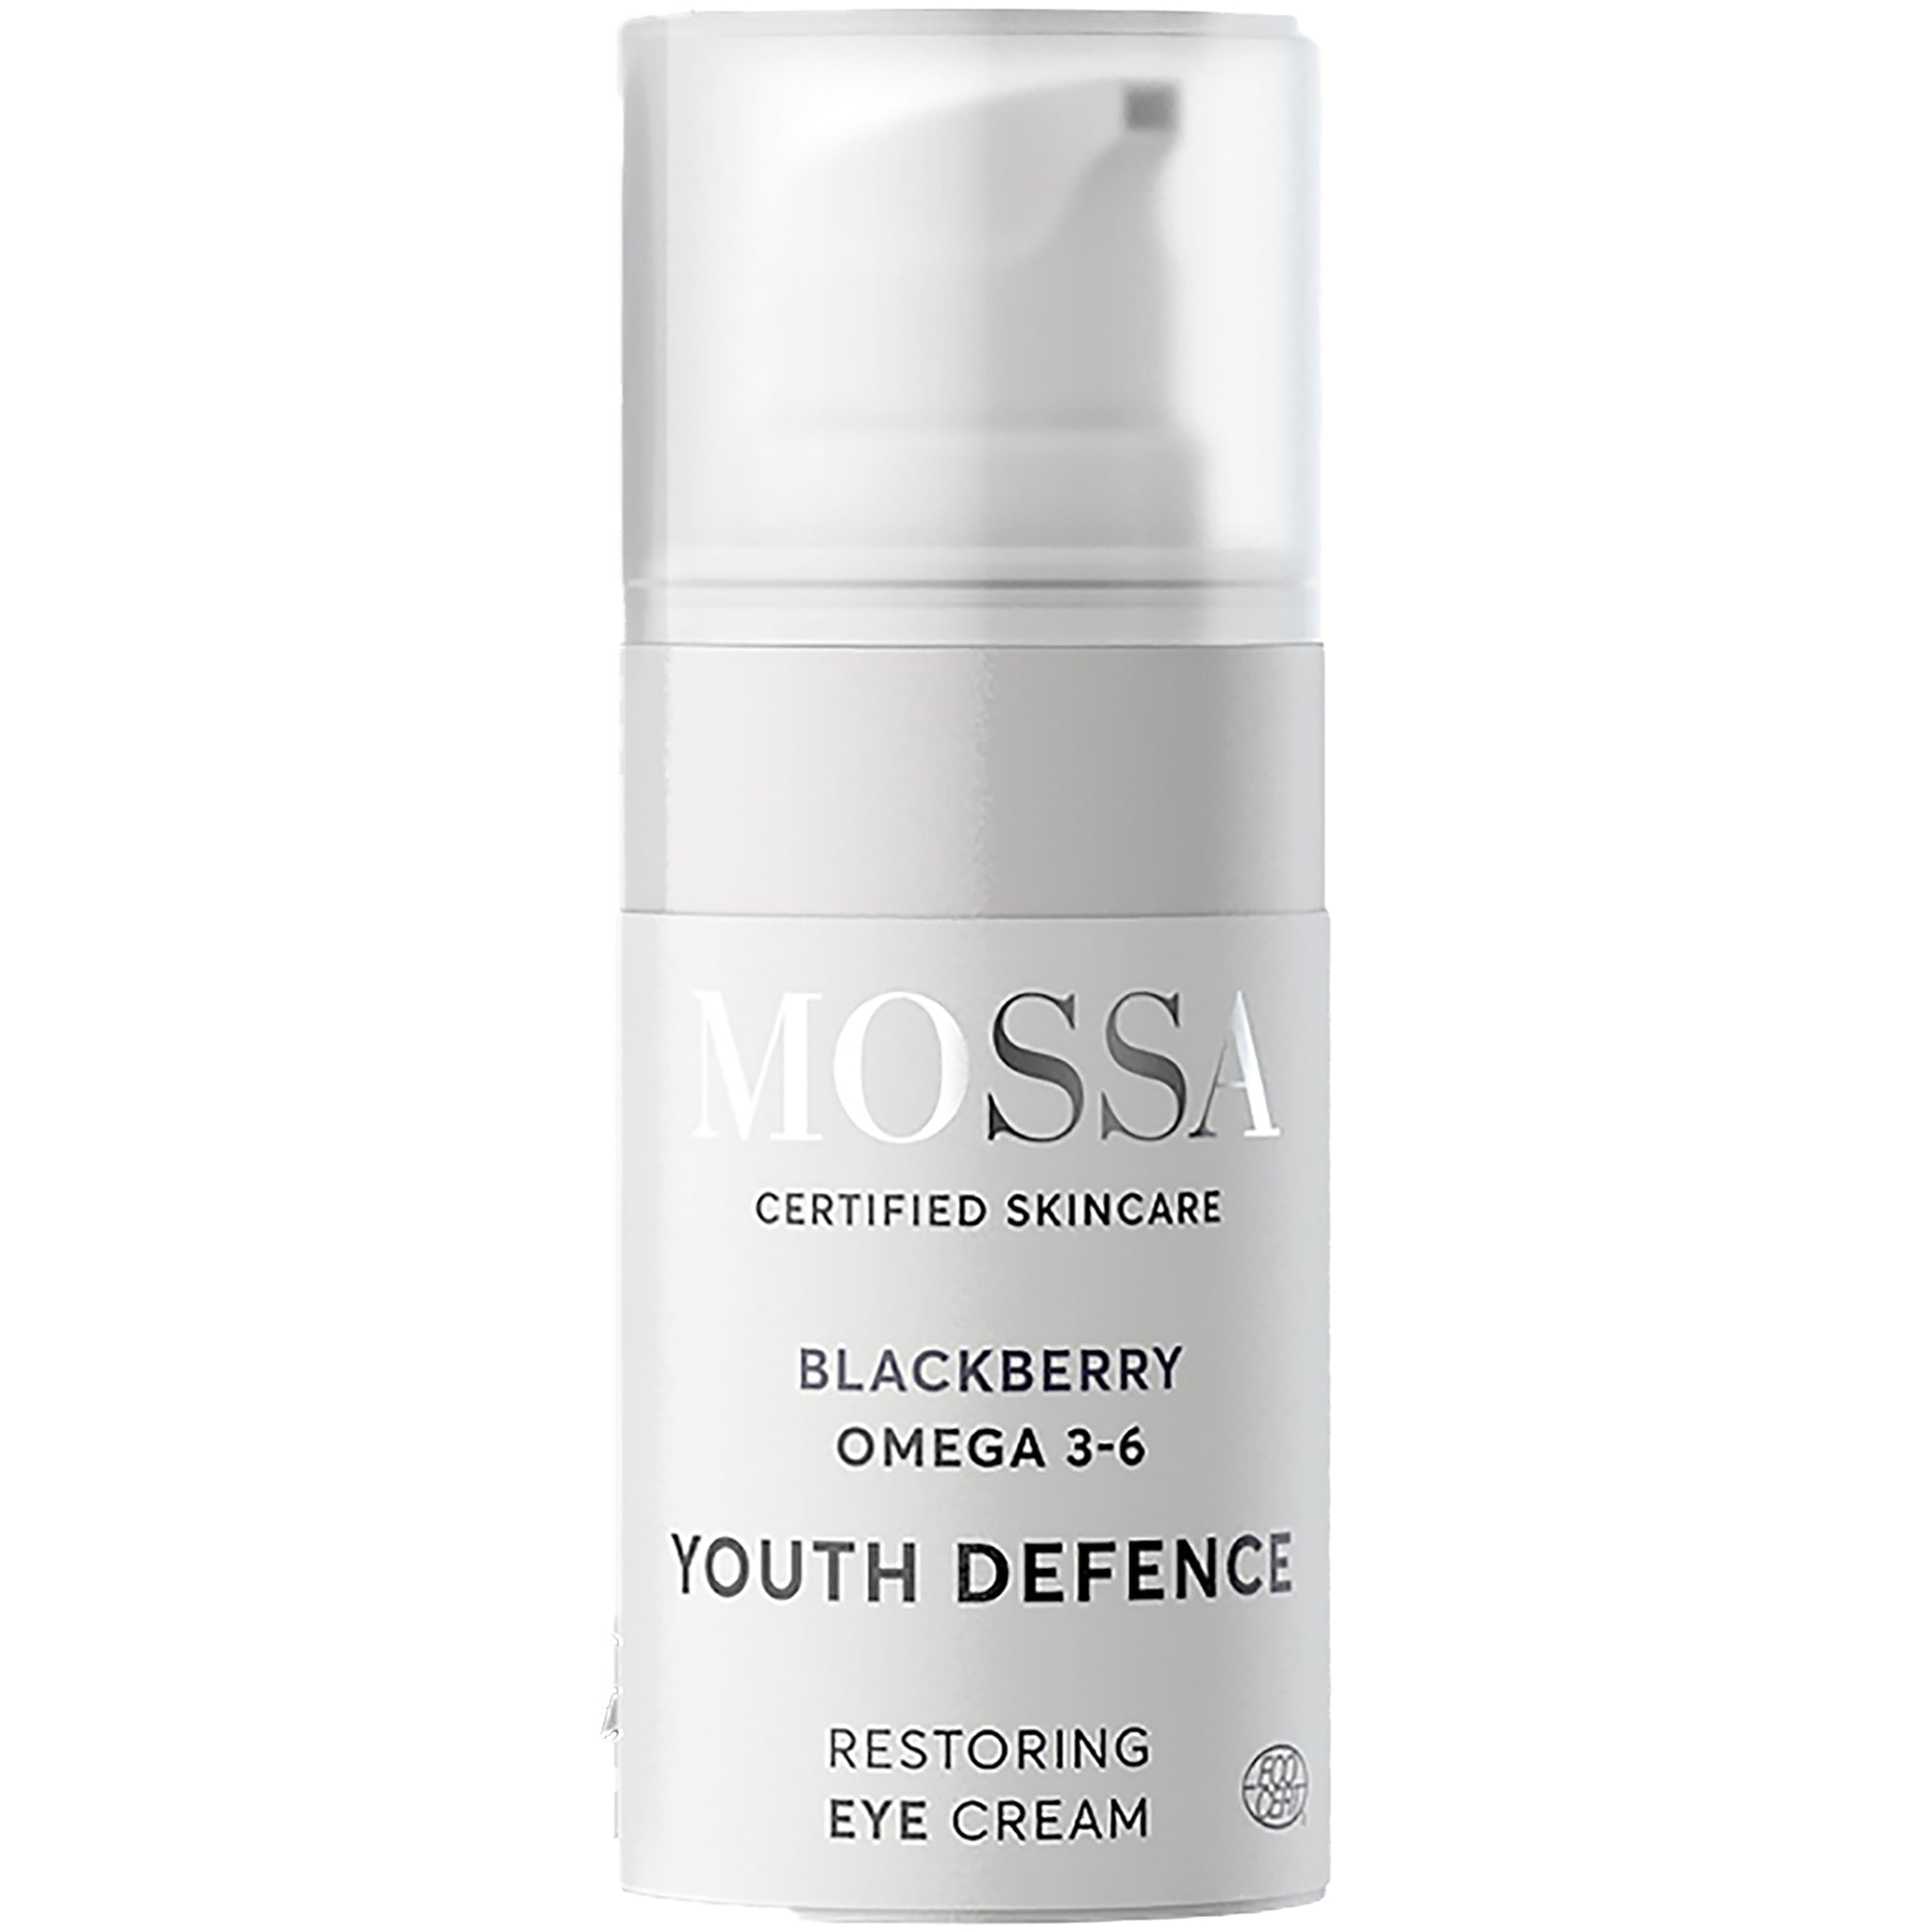 Youth Defence - Restoring Eye Cream